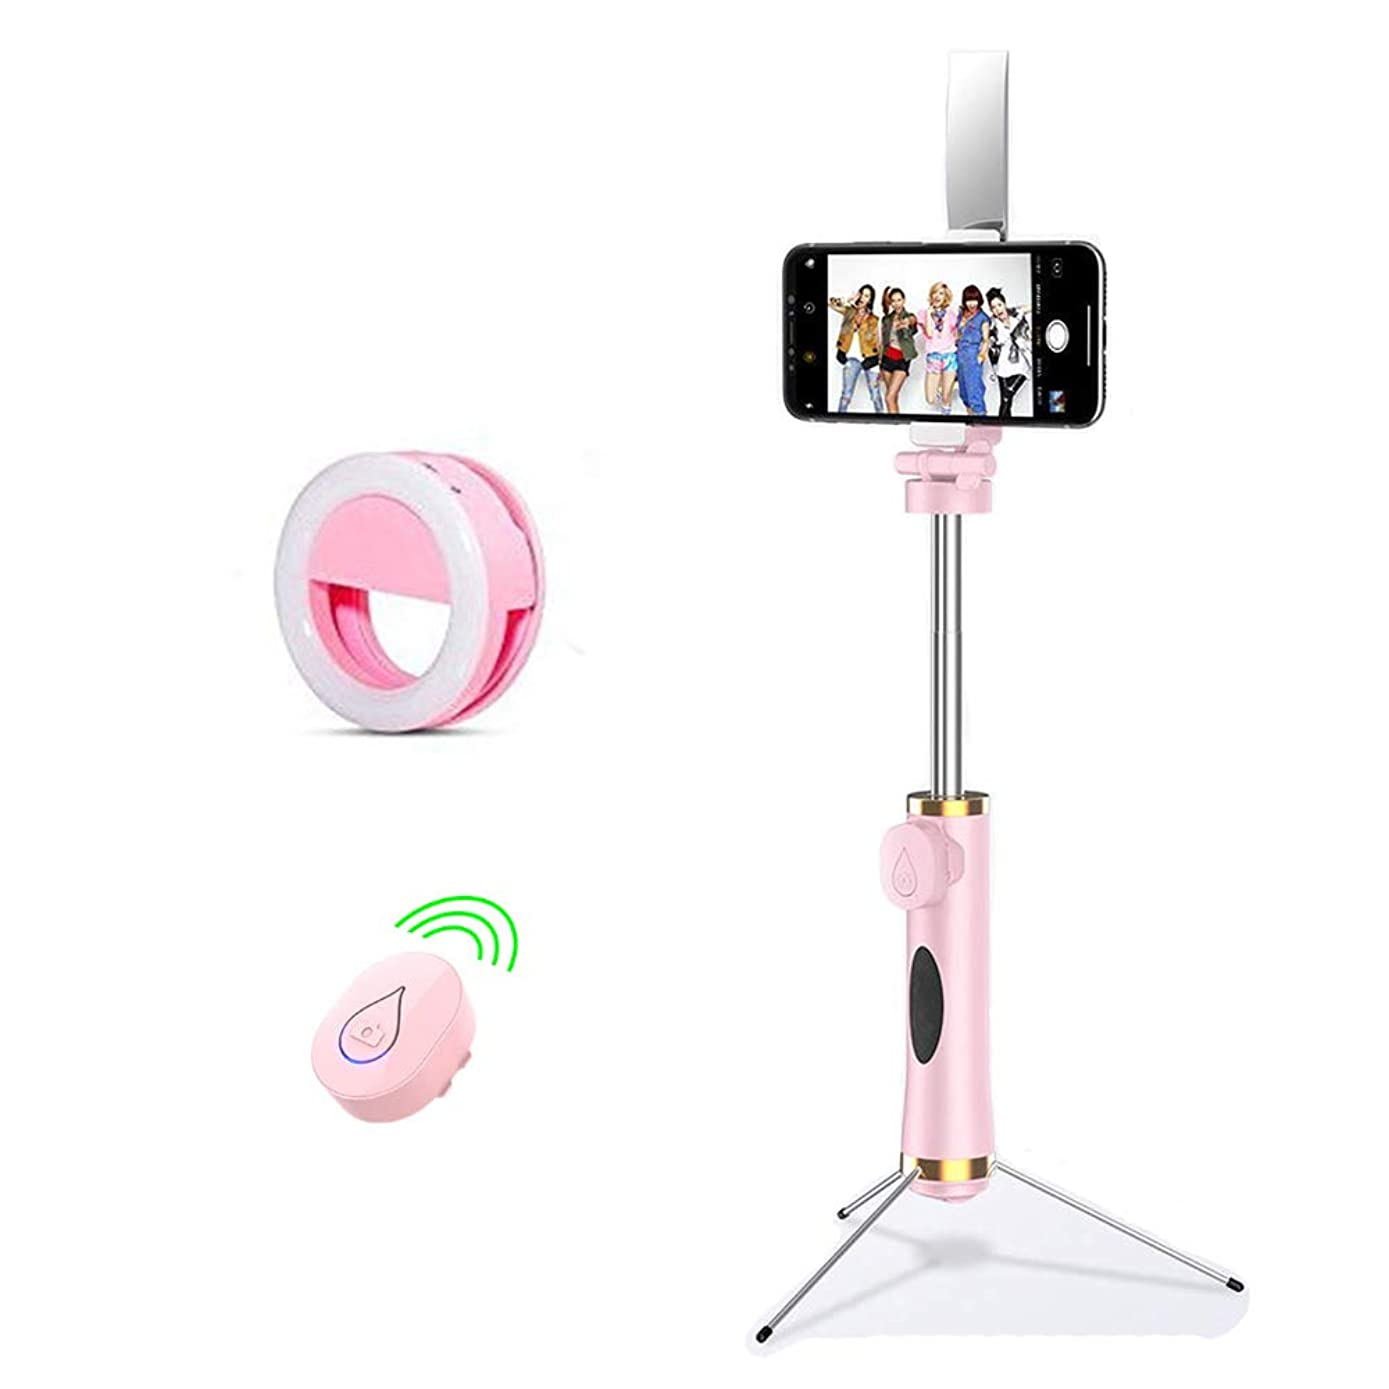 Selfie Stick Tripod, Expandable 80CM Stick with Bluetooth Wireless Remote, Detachable 3 Hidden Tripod Stand and Selfie Ring Light for iPhone X/8/8 Plus/7/6 Plus Android Samsung Galaxy S9/Other Phones